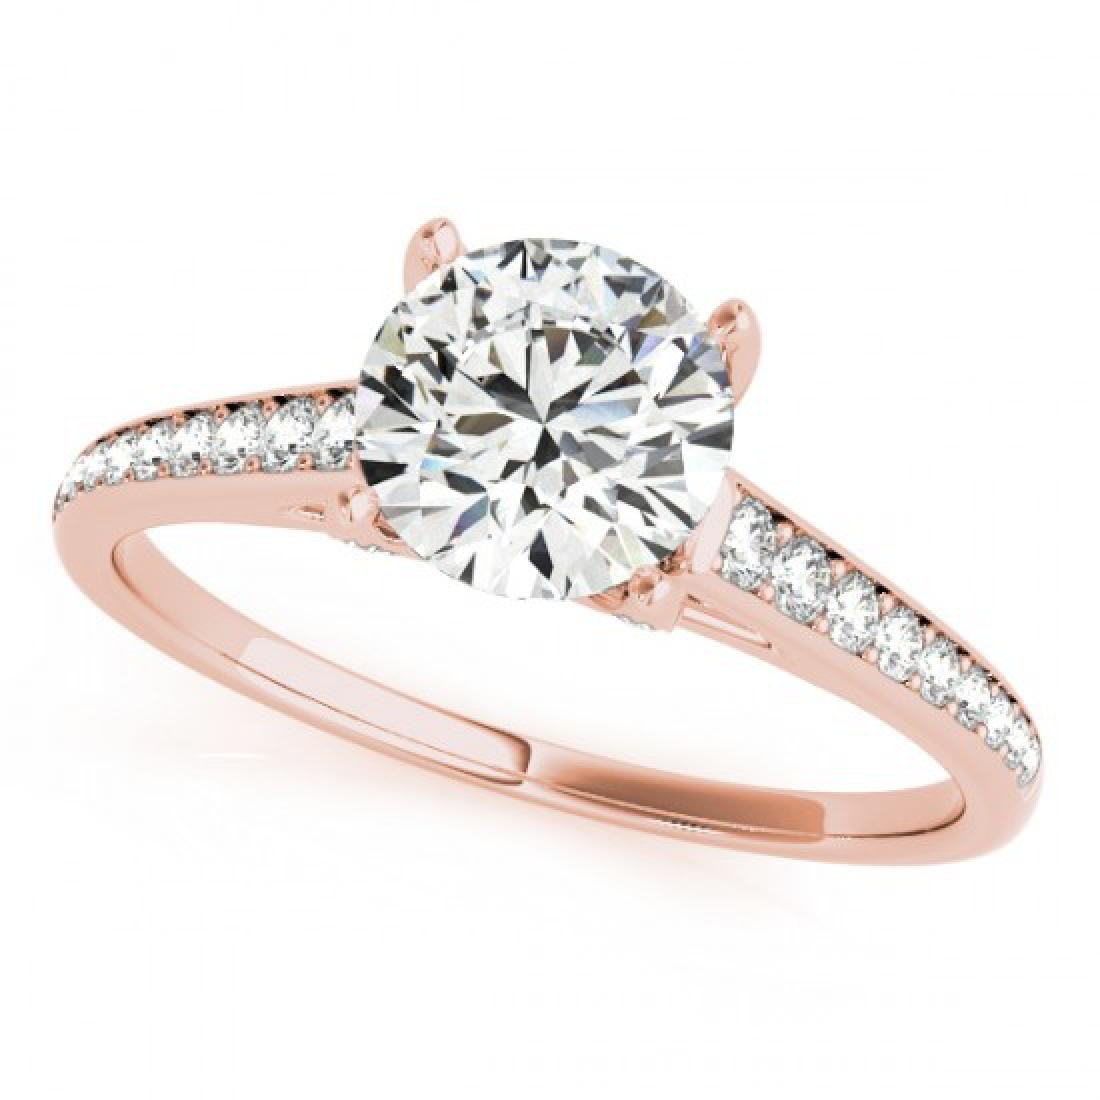 1.2 CTW Certified VS/SI Diamond Solitaire Ring 18K Rose